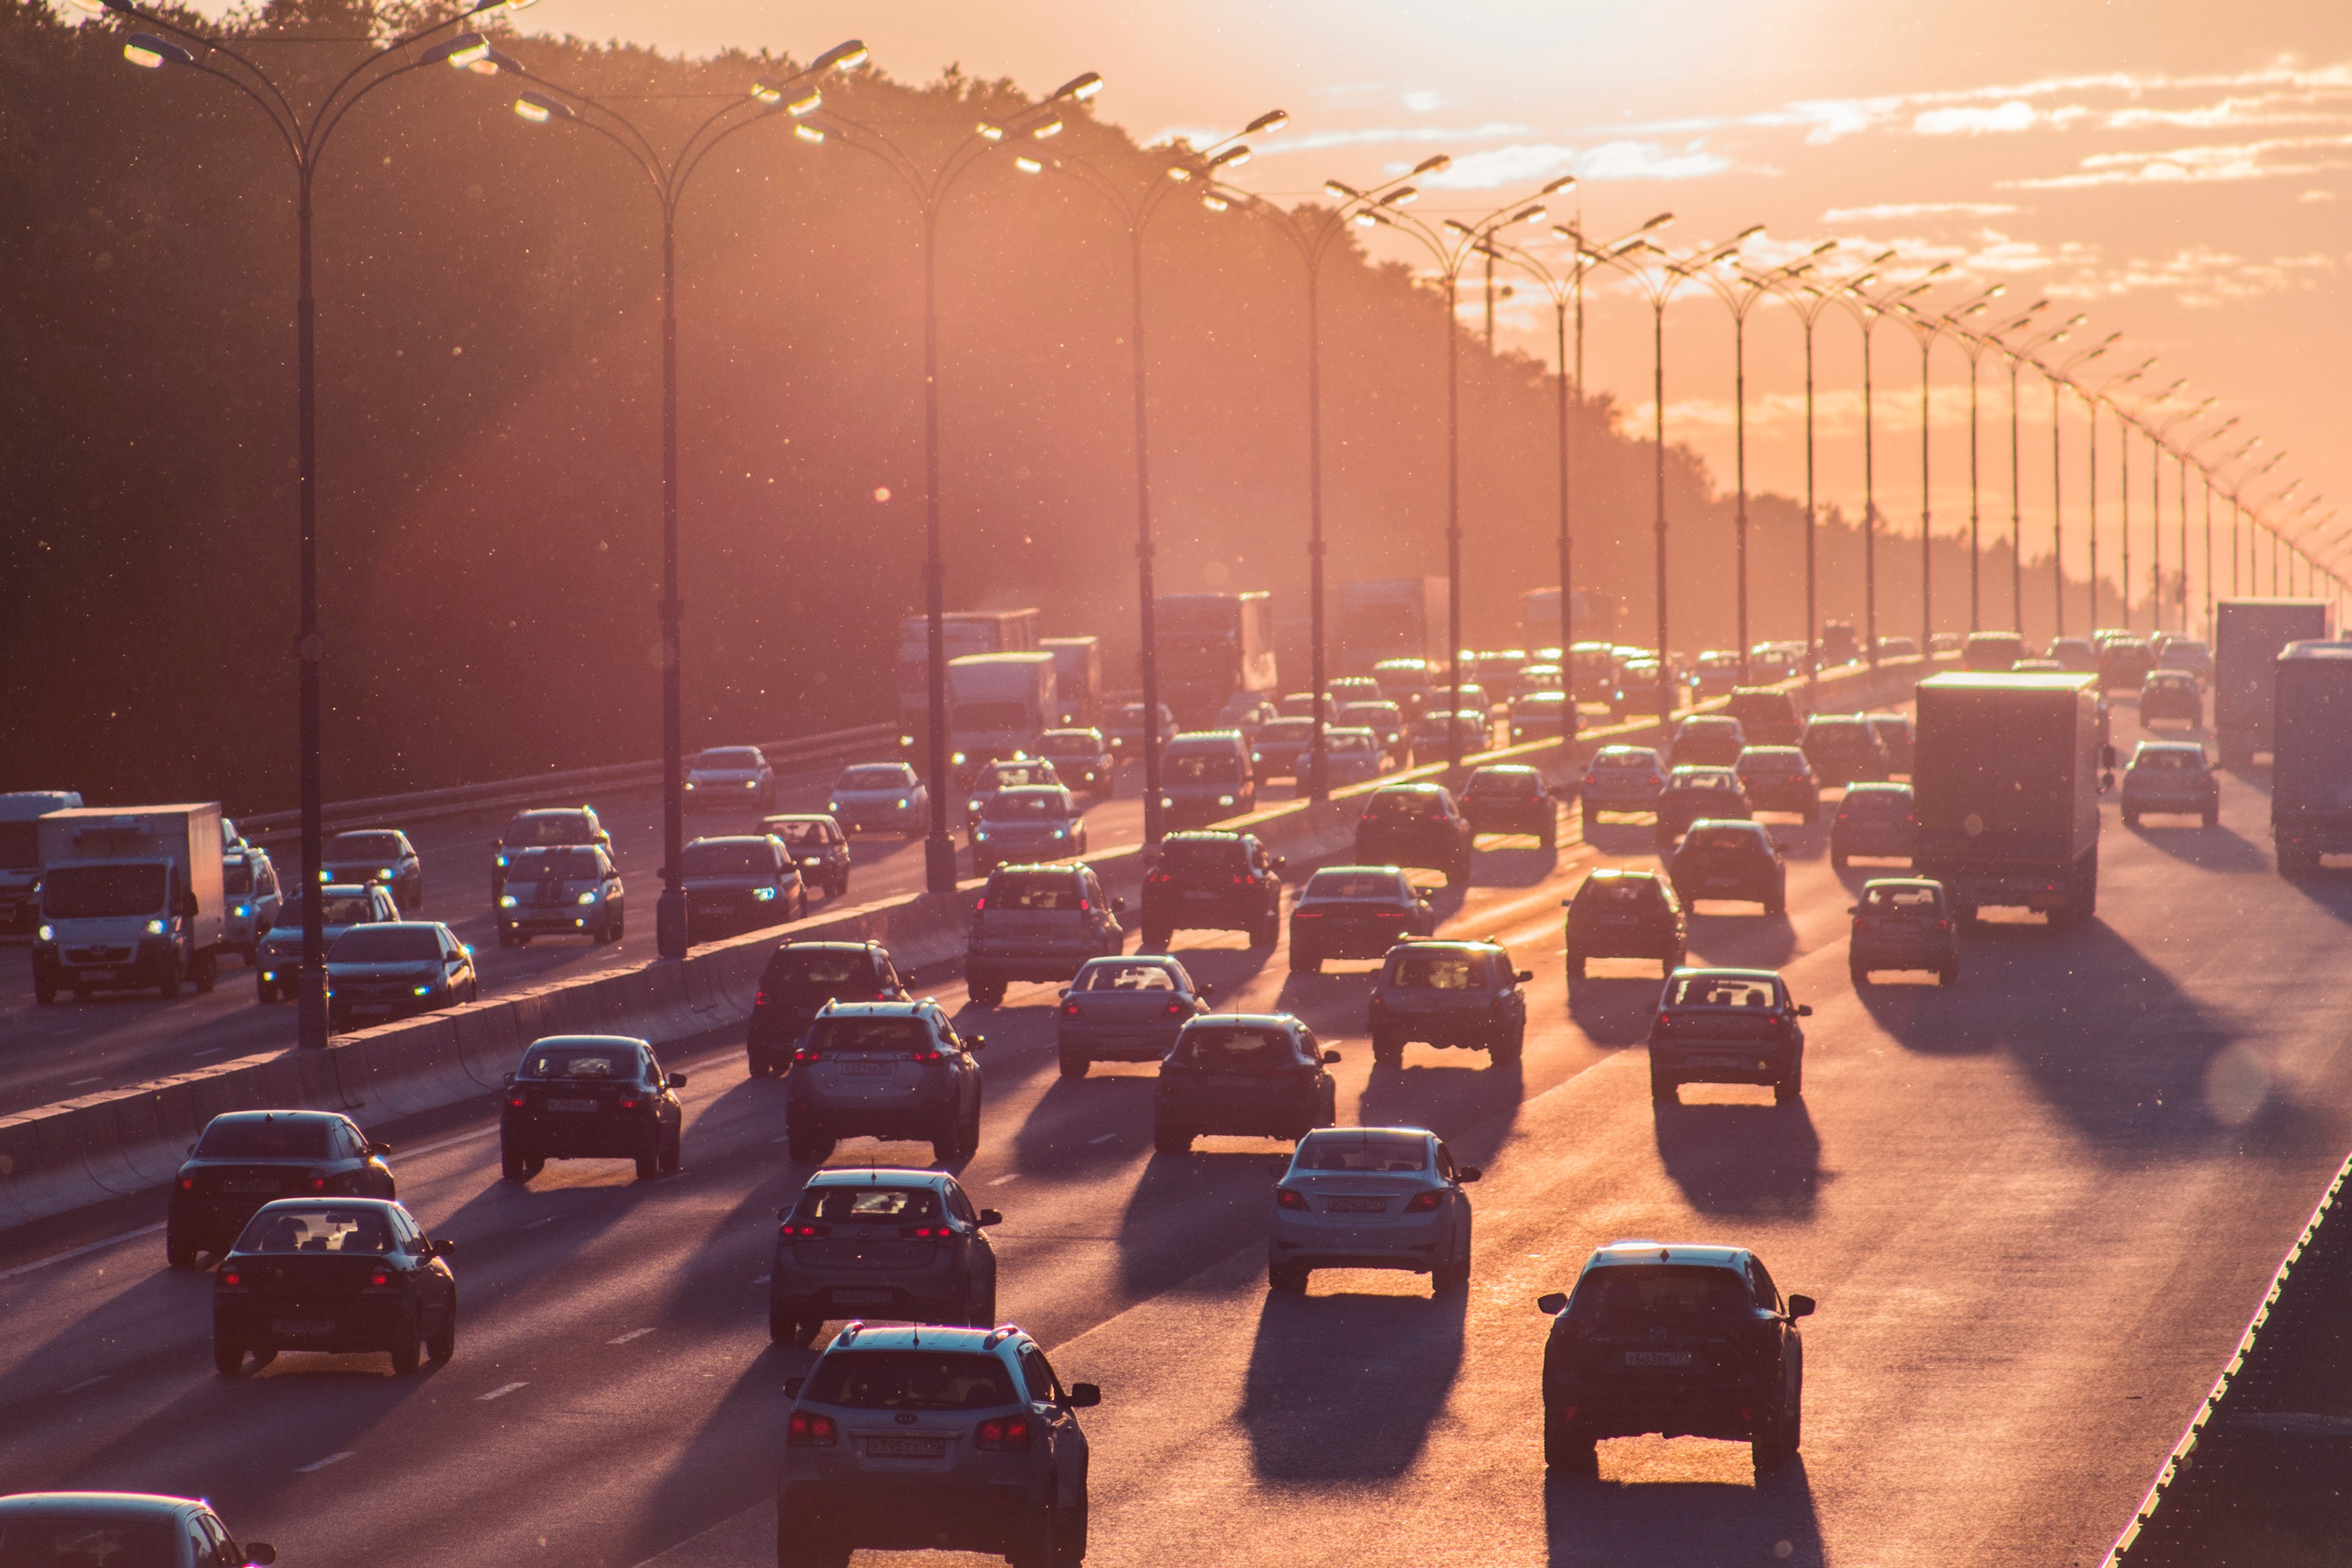 New Study Examines Commuter Characteristics and Traffic Pollution Exposure Among Commuters